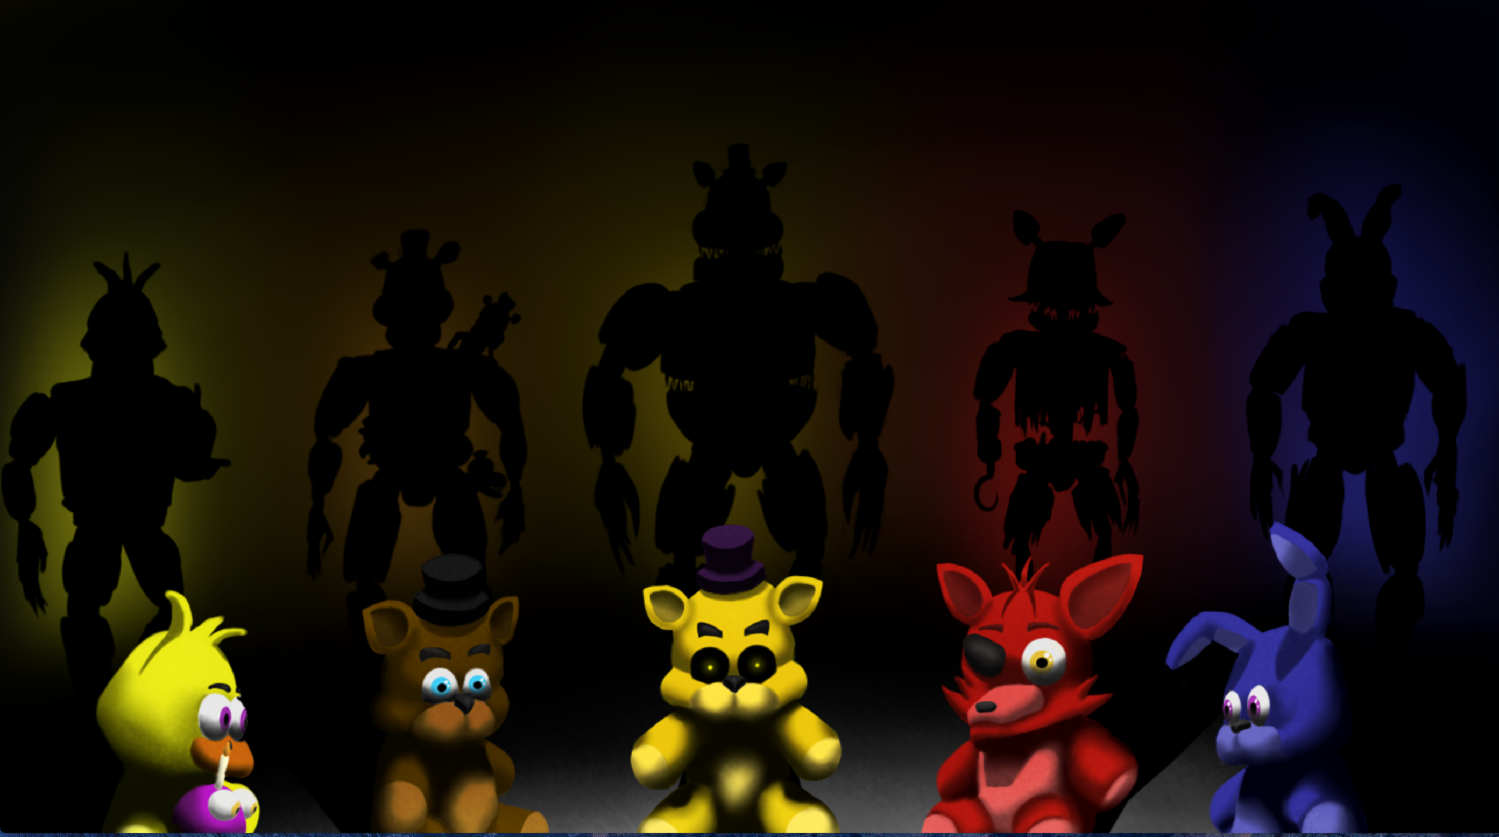 what fnaf ( five nights at freddys ) animatronic are you?